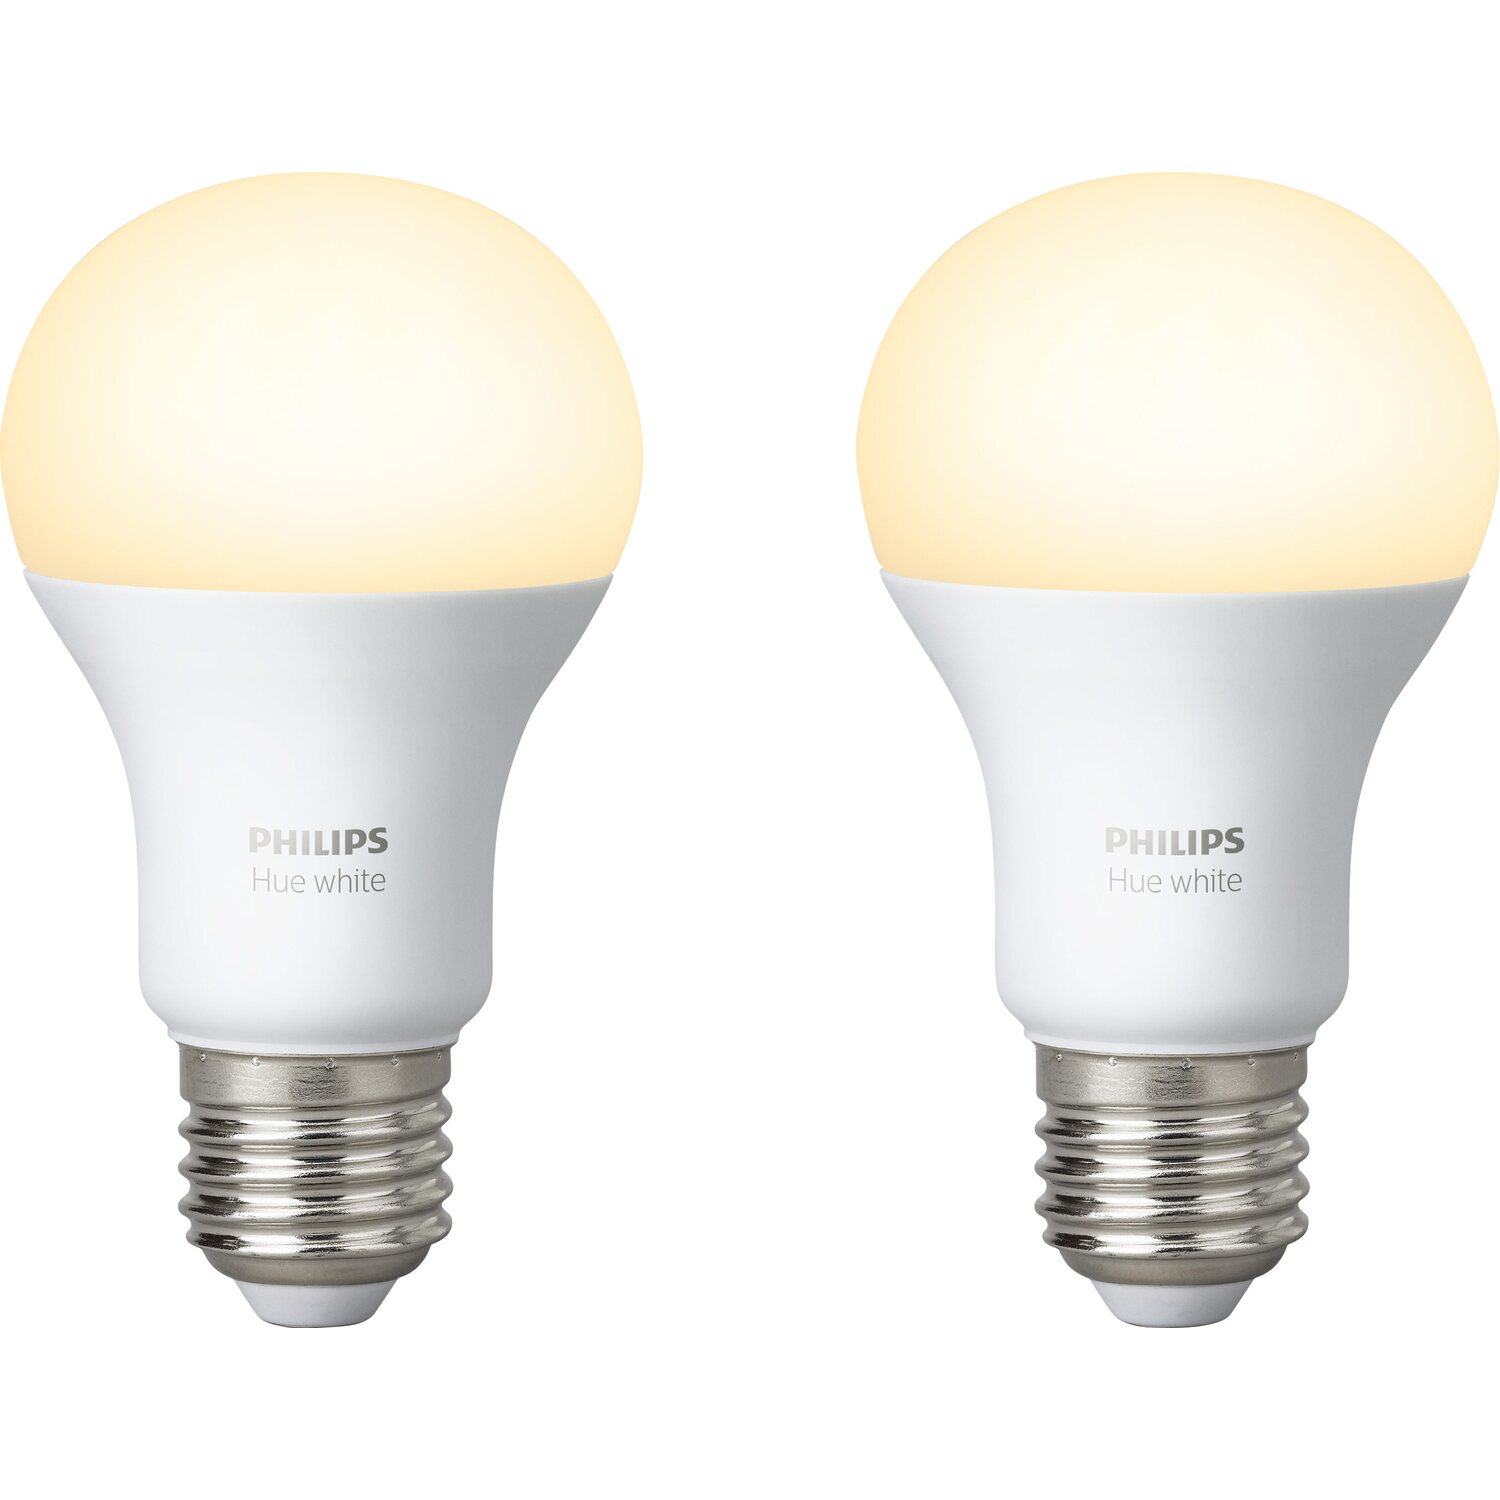 philips hue led lampe white doppelpack e27 9 5w eek a kaufen bei obi. Black Bedroom Furniture Sets. Home Design Ideas